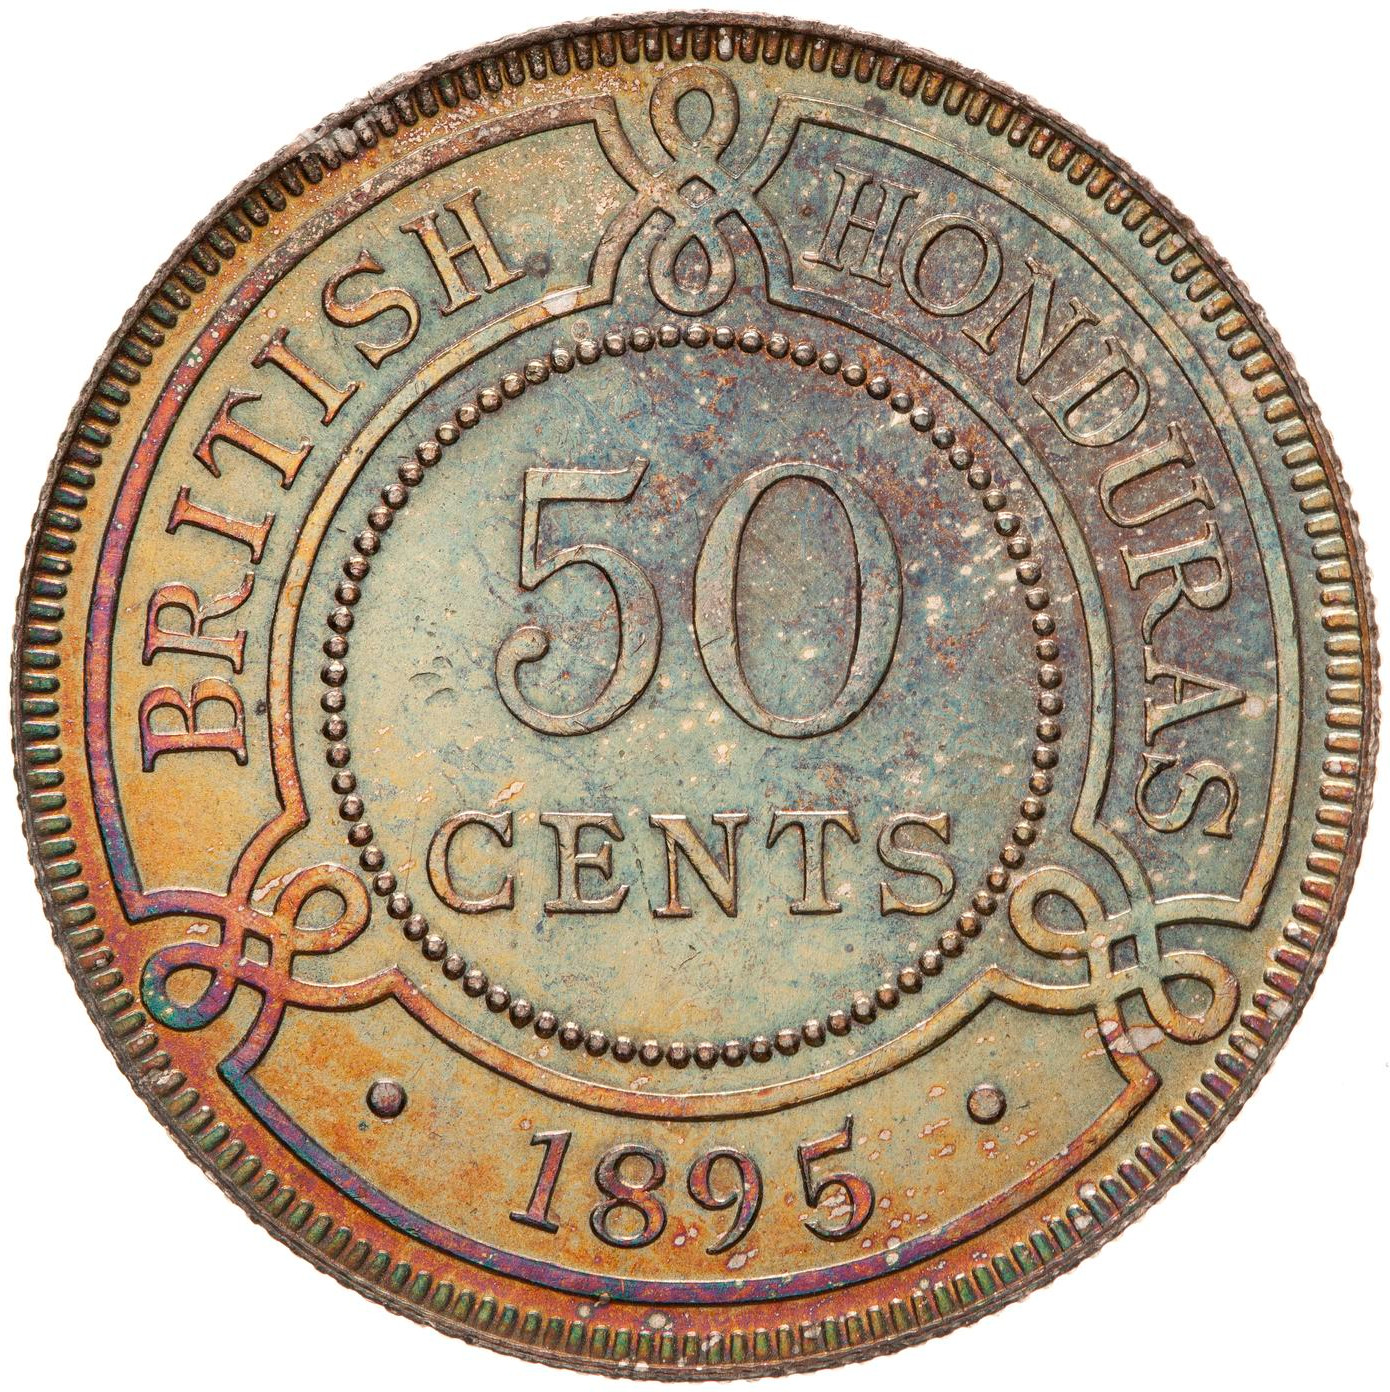 Fifty Cents: Photo Coin - 50 Cents, British Honduras (Belize), 1894